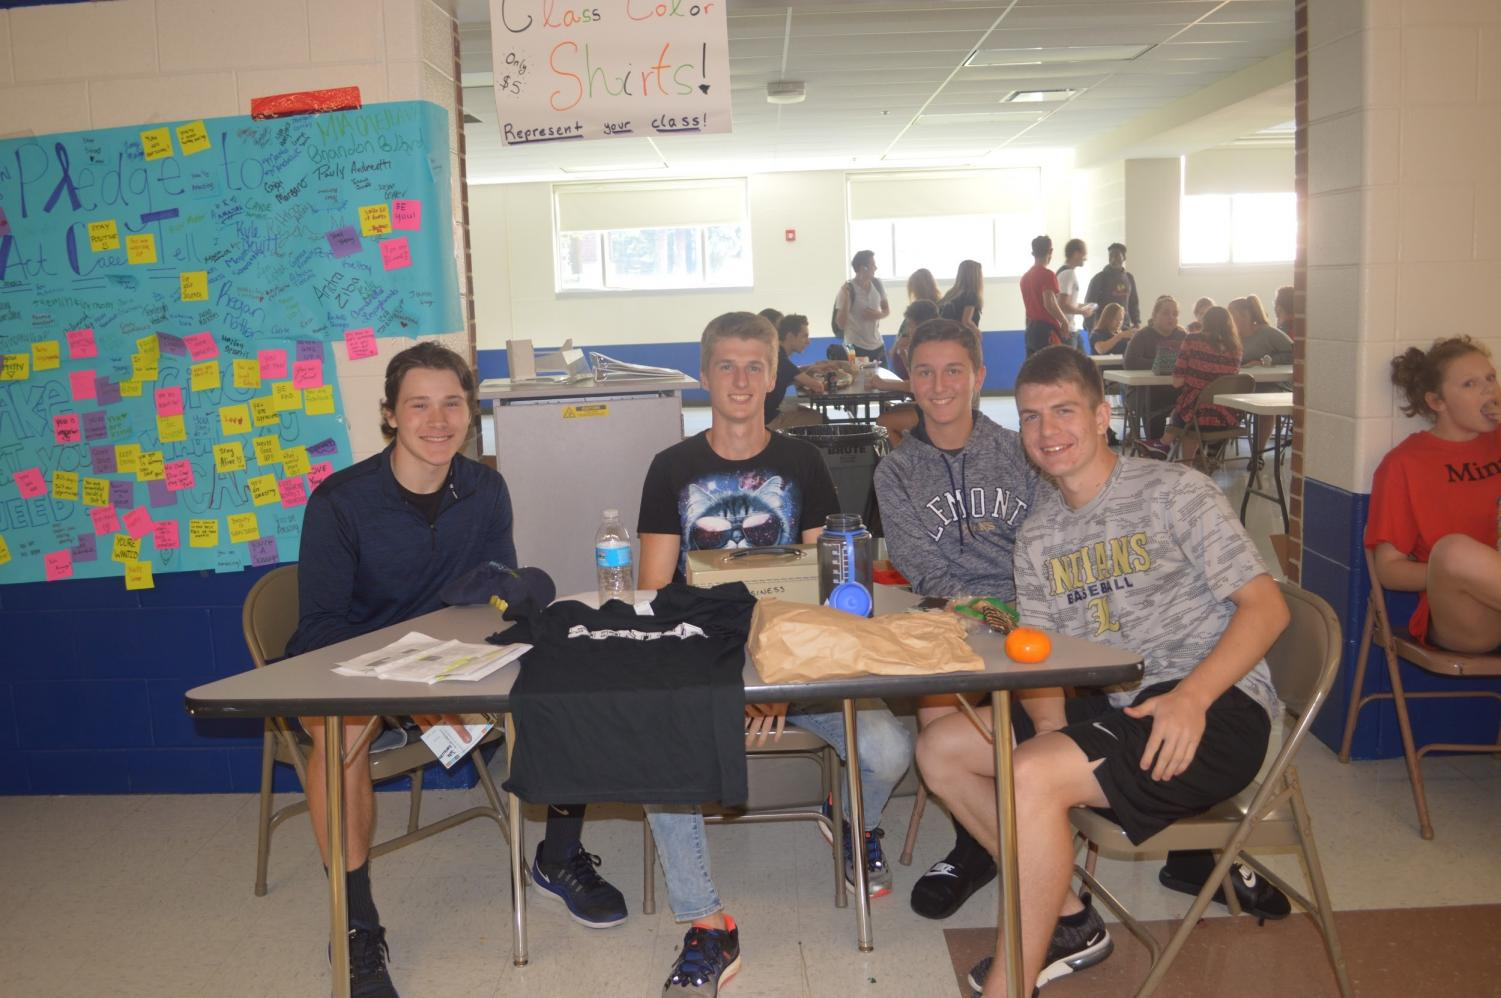 Students sell class color day t-shirts during lunch in the Commons. (left to right; Jacob Koneiczka, Andrew Deuschle,  Logan Kearns, Gavin Pawell)